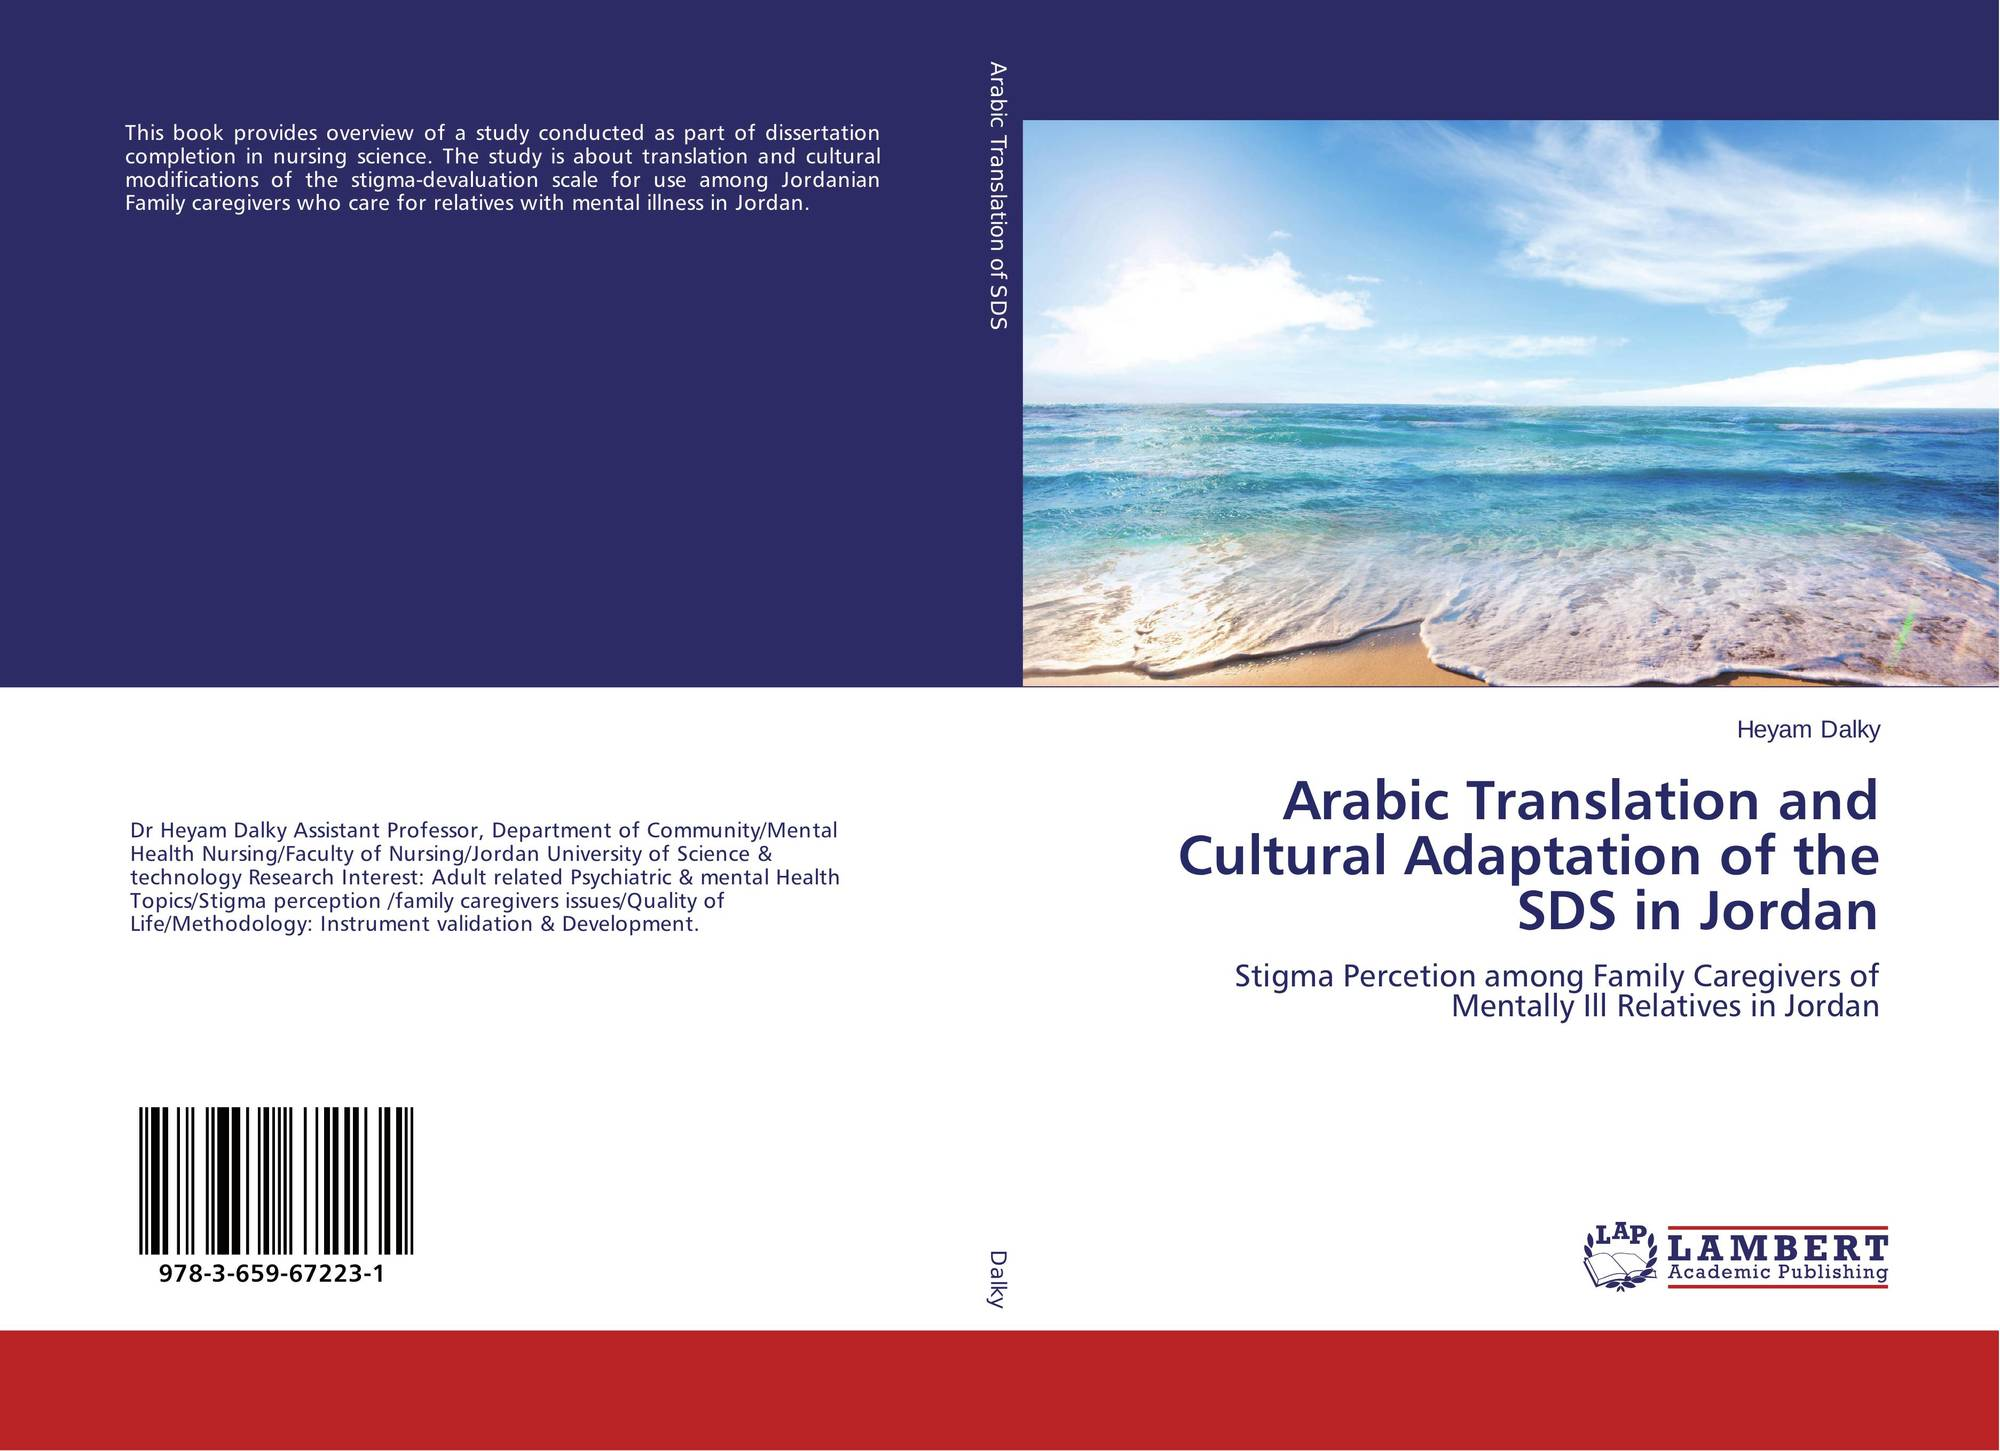 Arabic Translation And Cultural Adaptation Of The Sds In Jordan 978